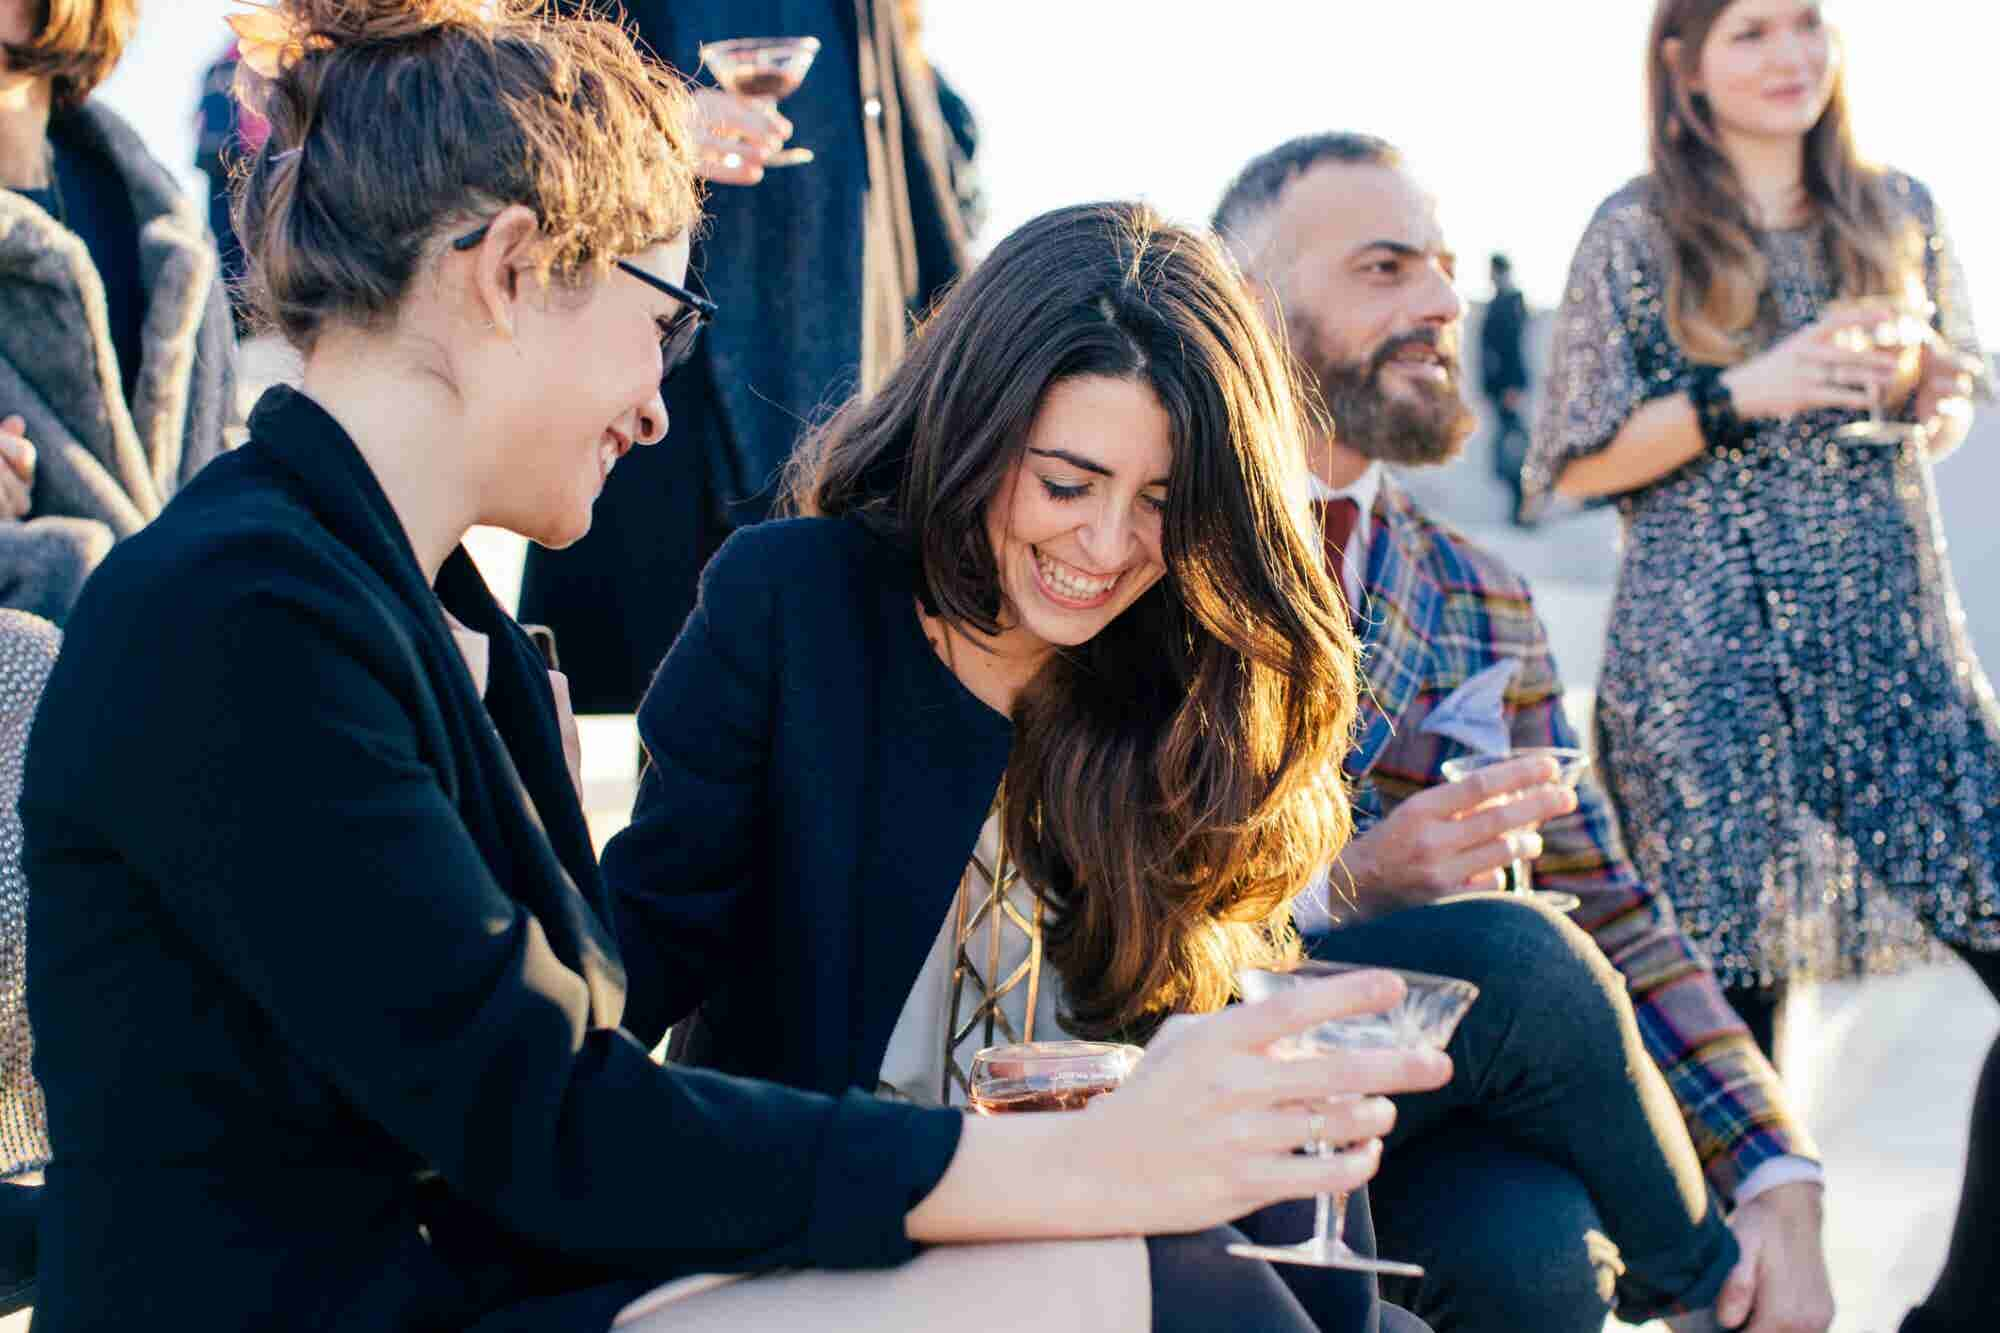 How to Create Special Events People Will Love